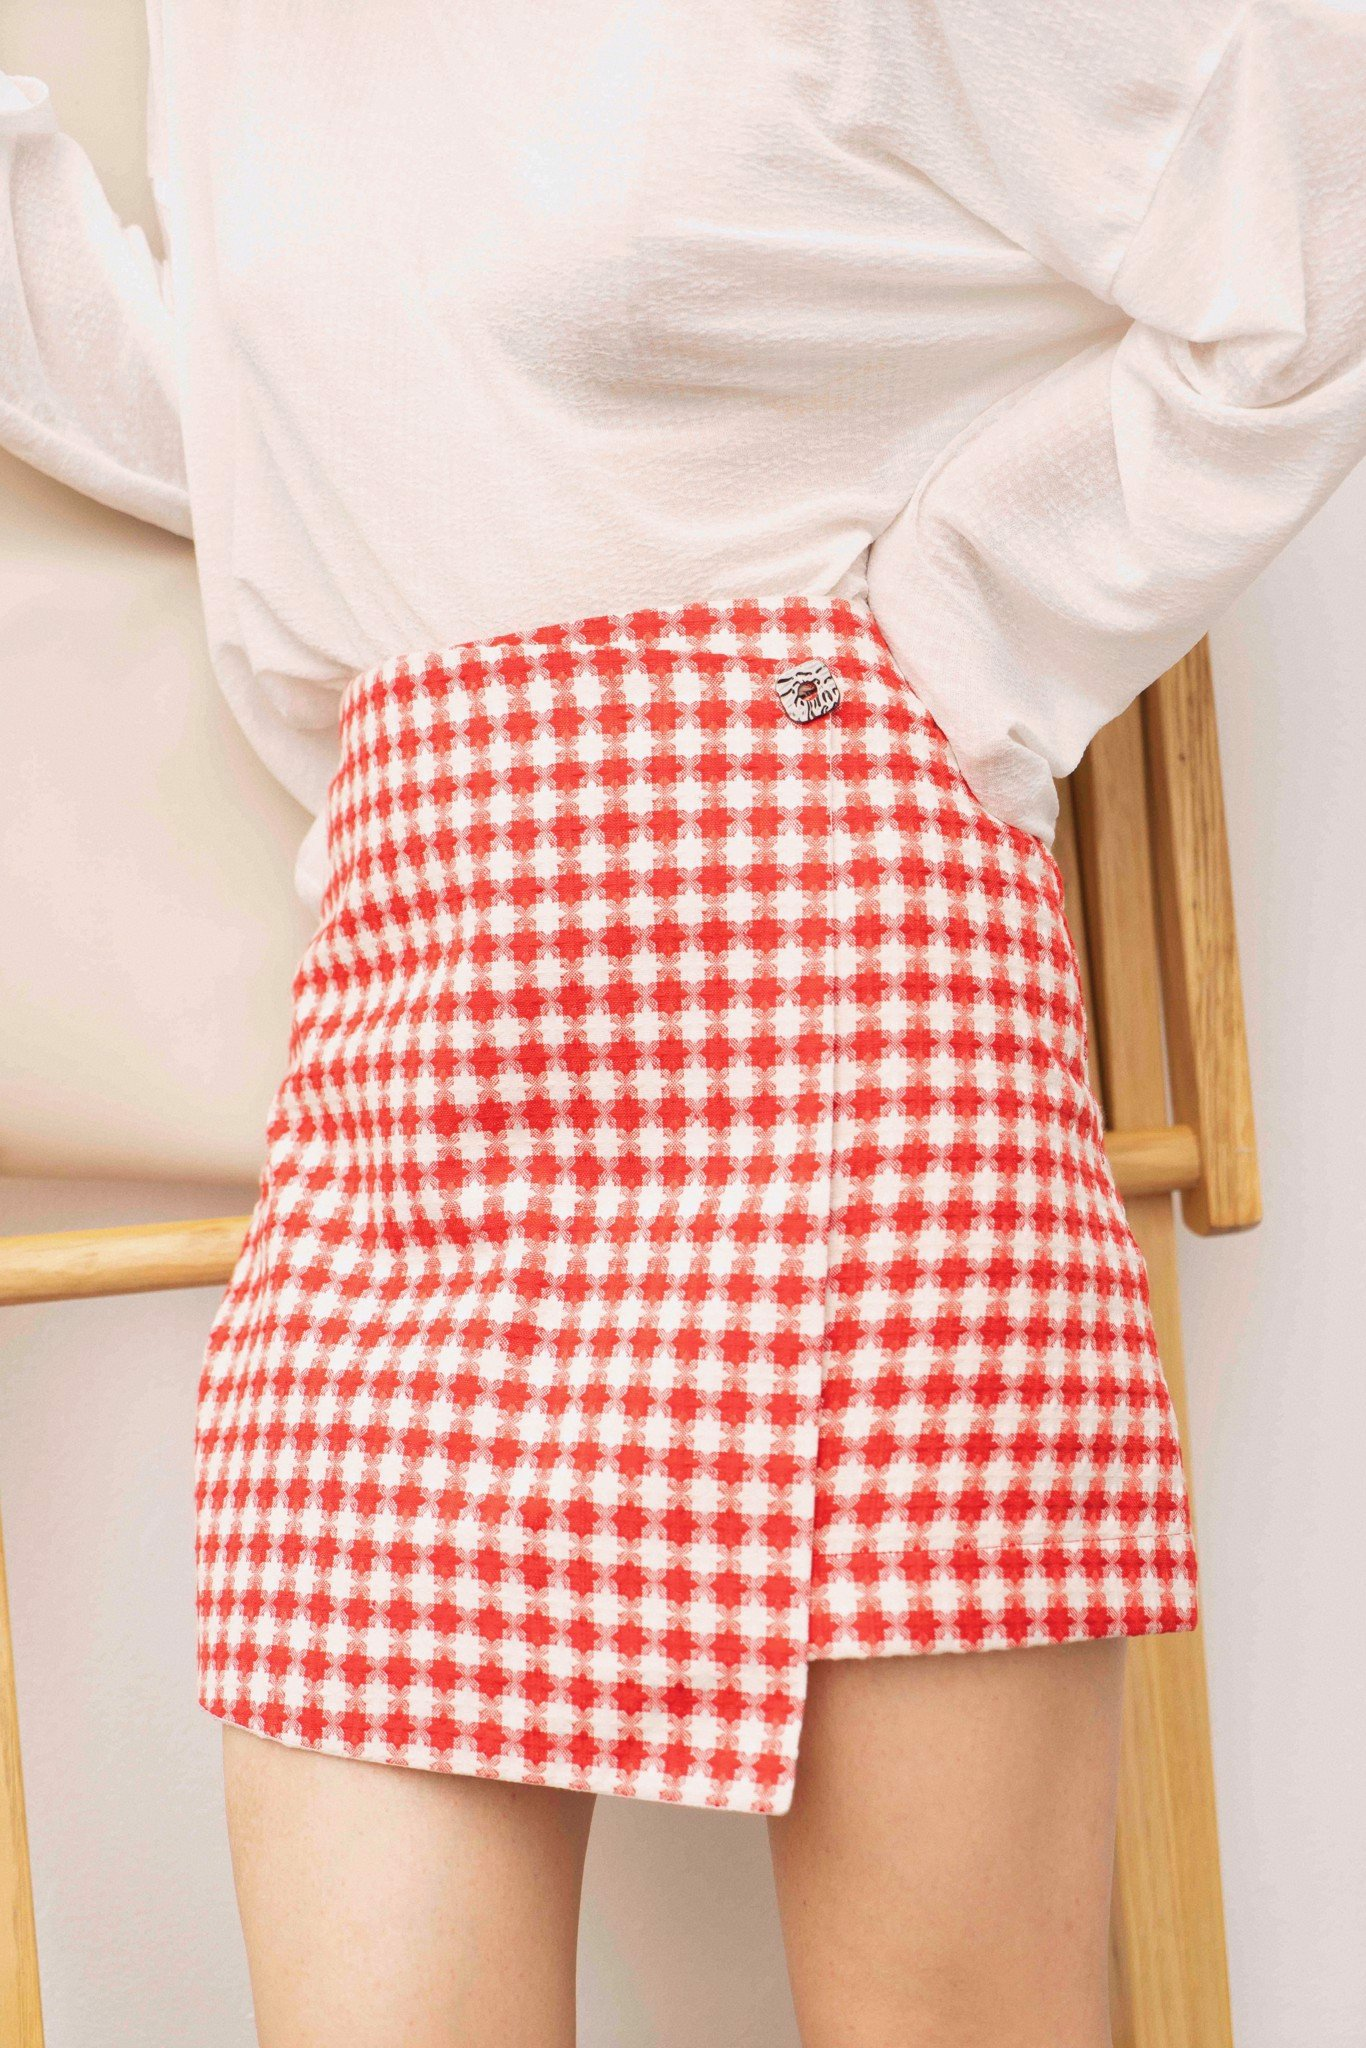 Red & White Checked Skirt